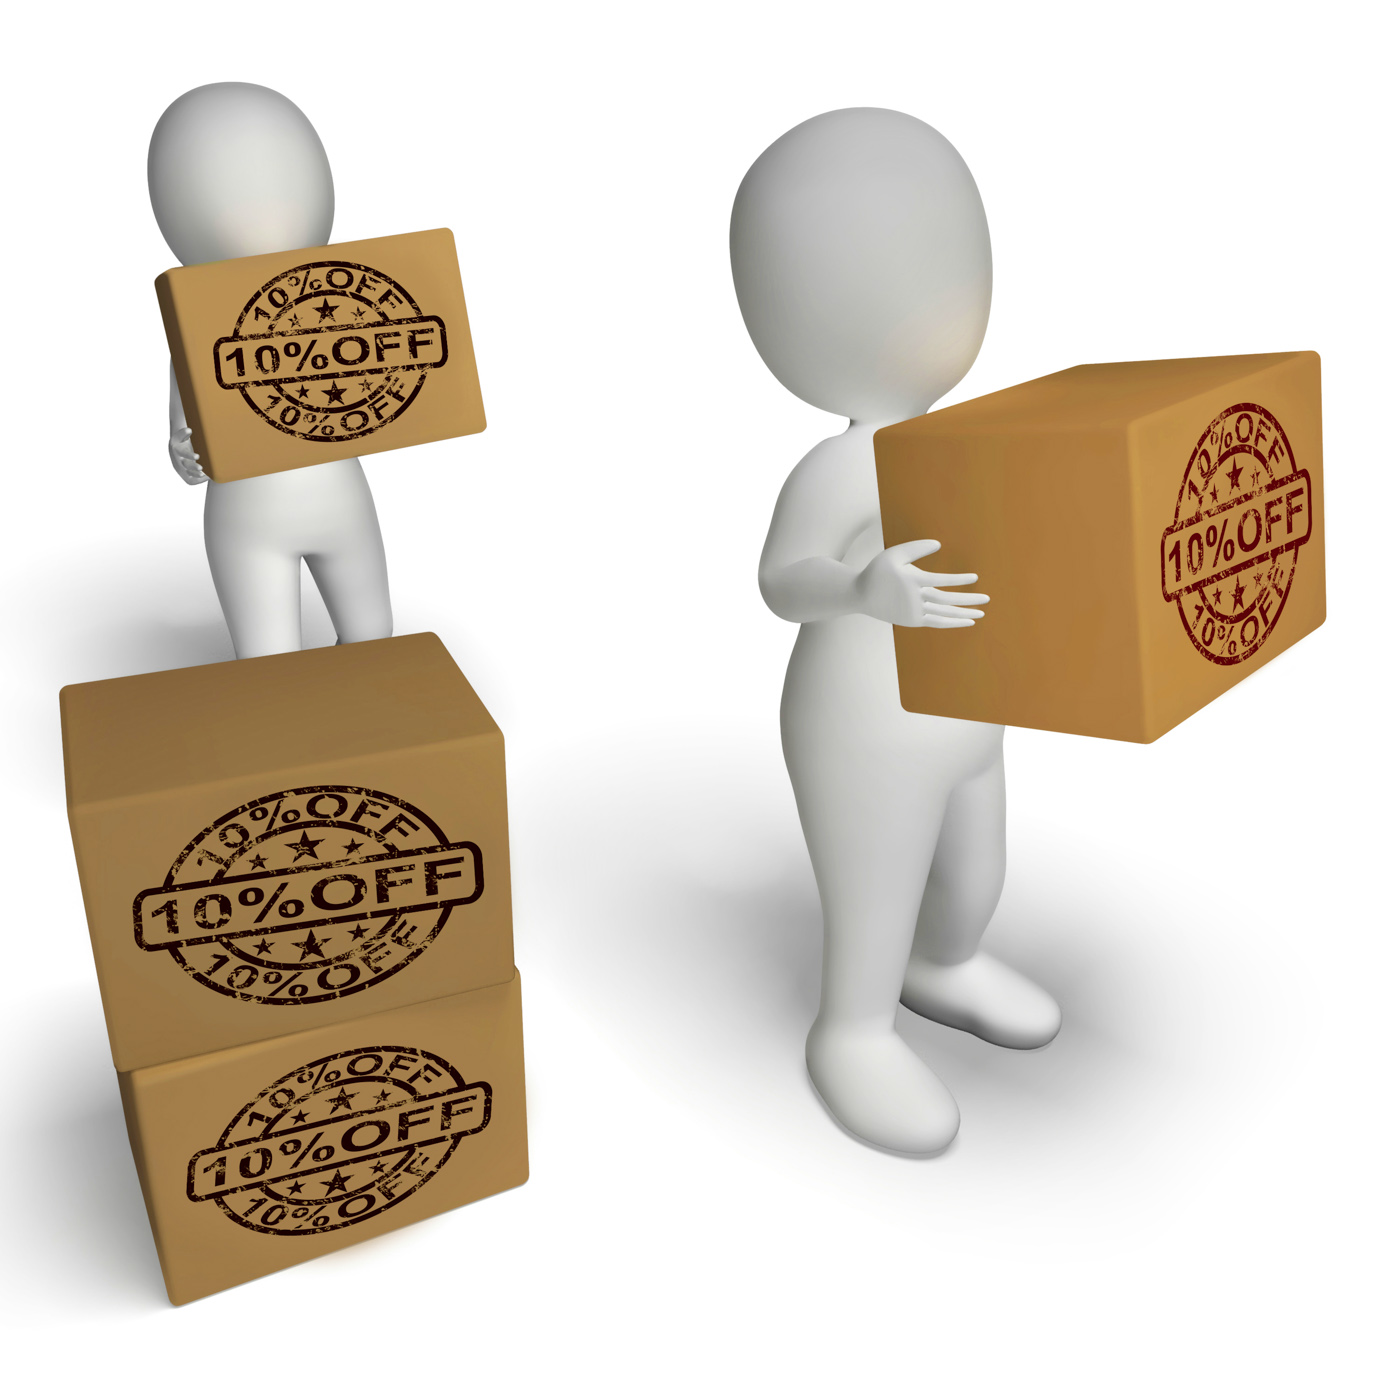 Ten percent off boxes show 10 reduced price photo